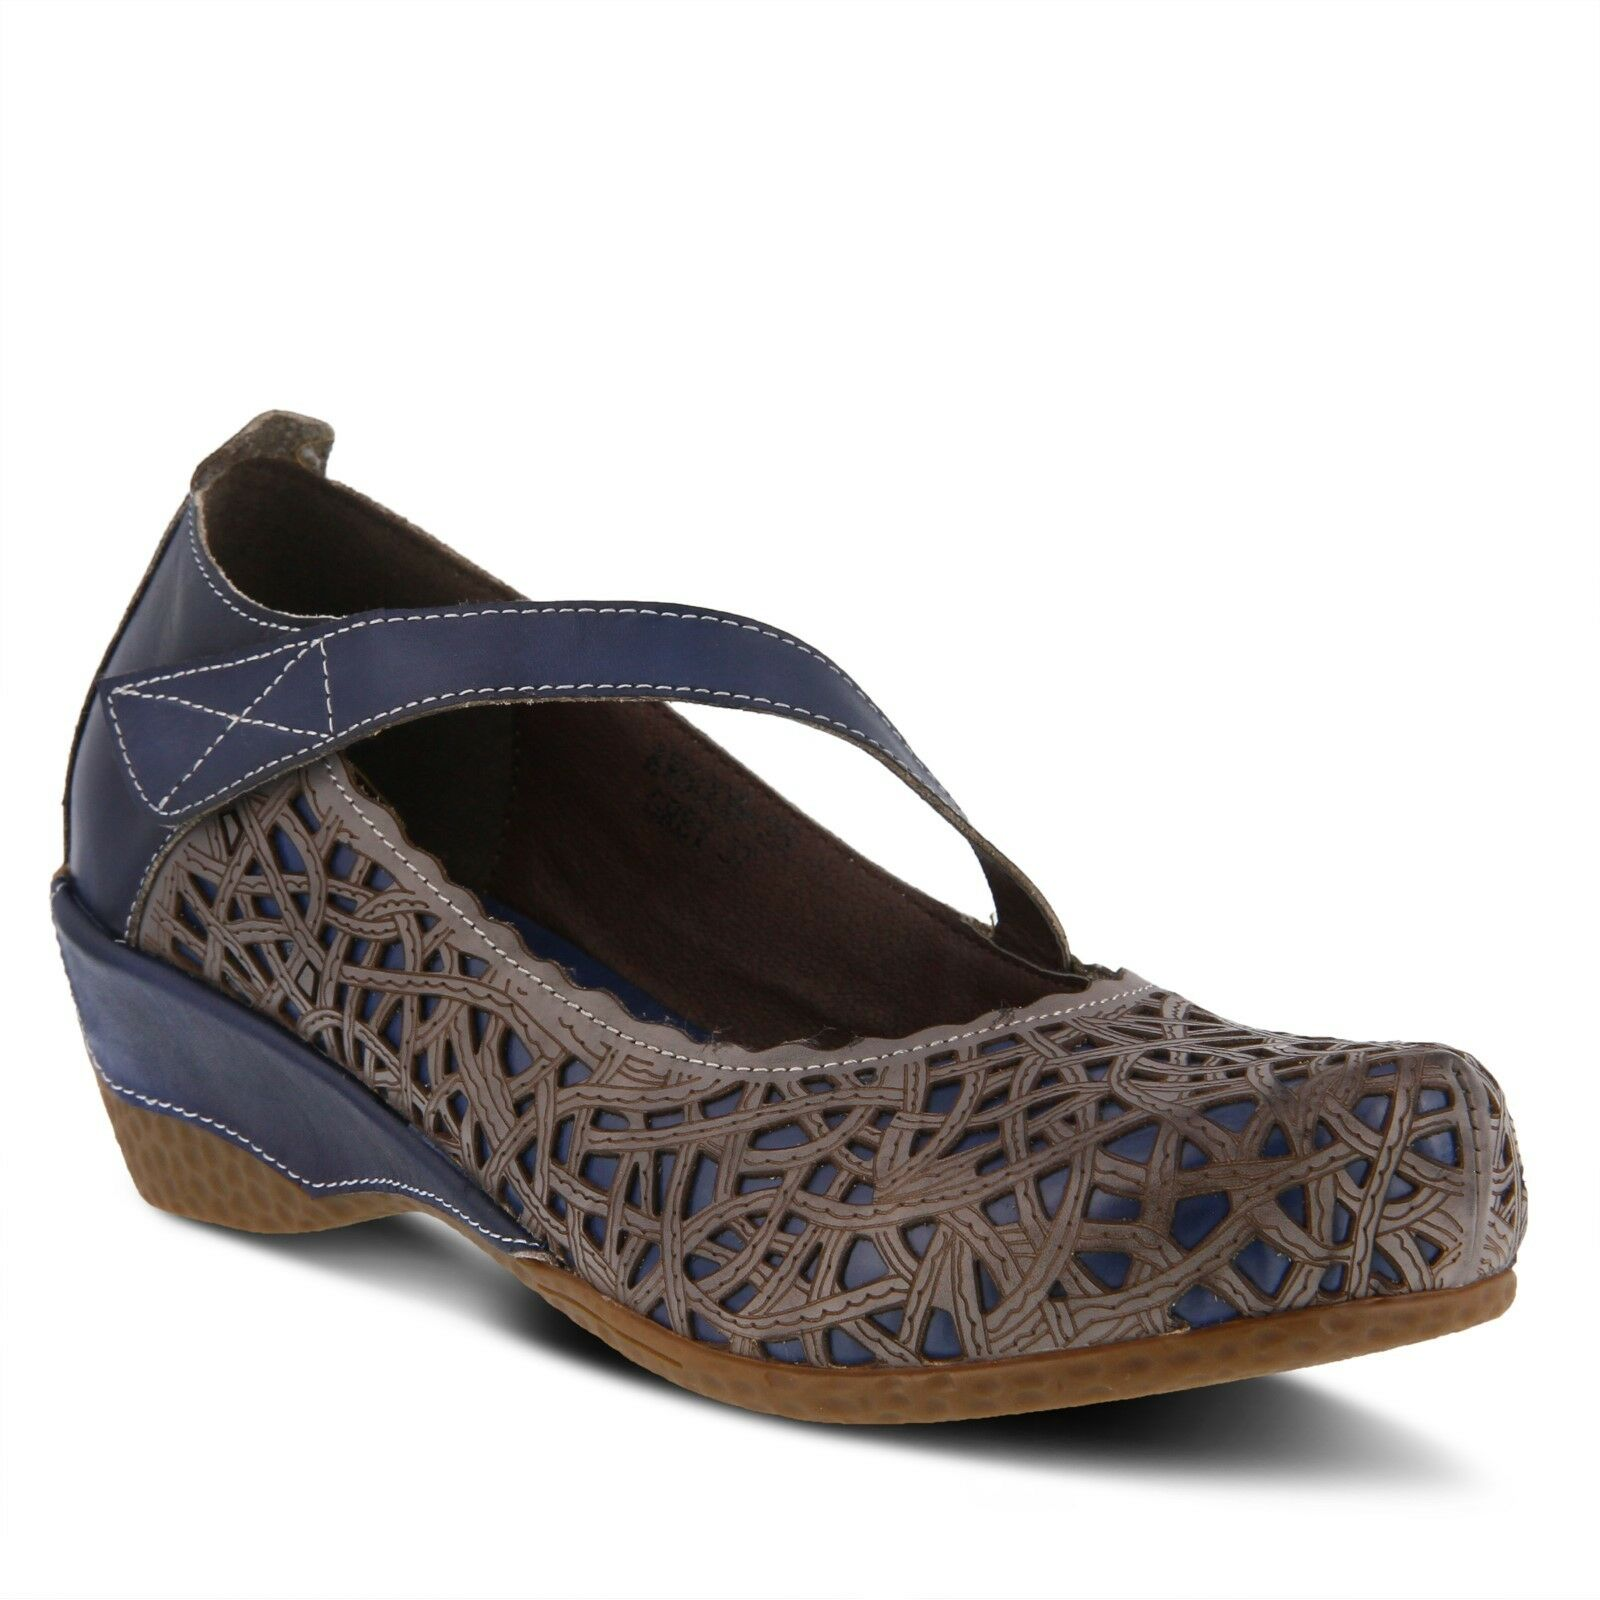 Interview Melinda Mujer Mujer Mujer Azul Multi Mary Jane Zapatos EE. UU. 6 EUR 36  muy popular